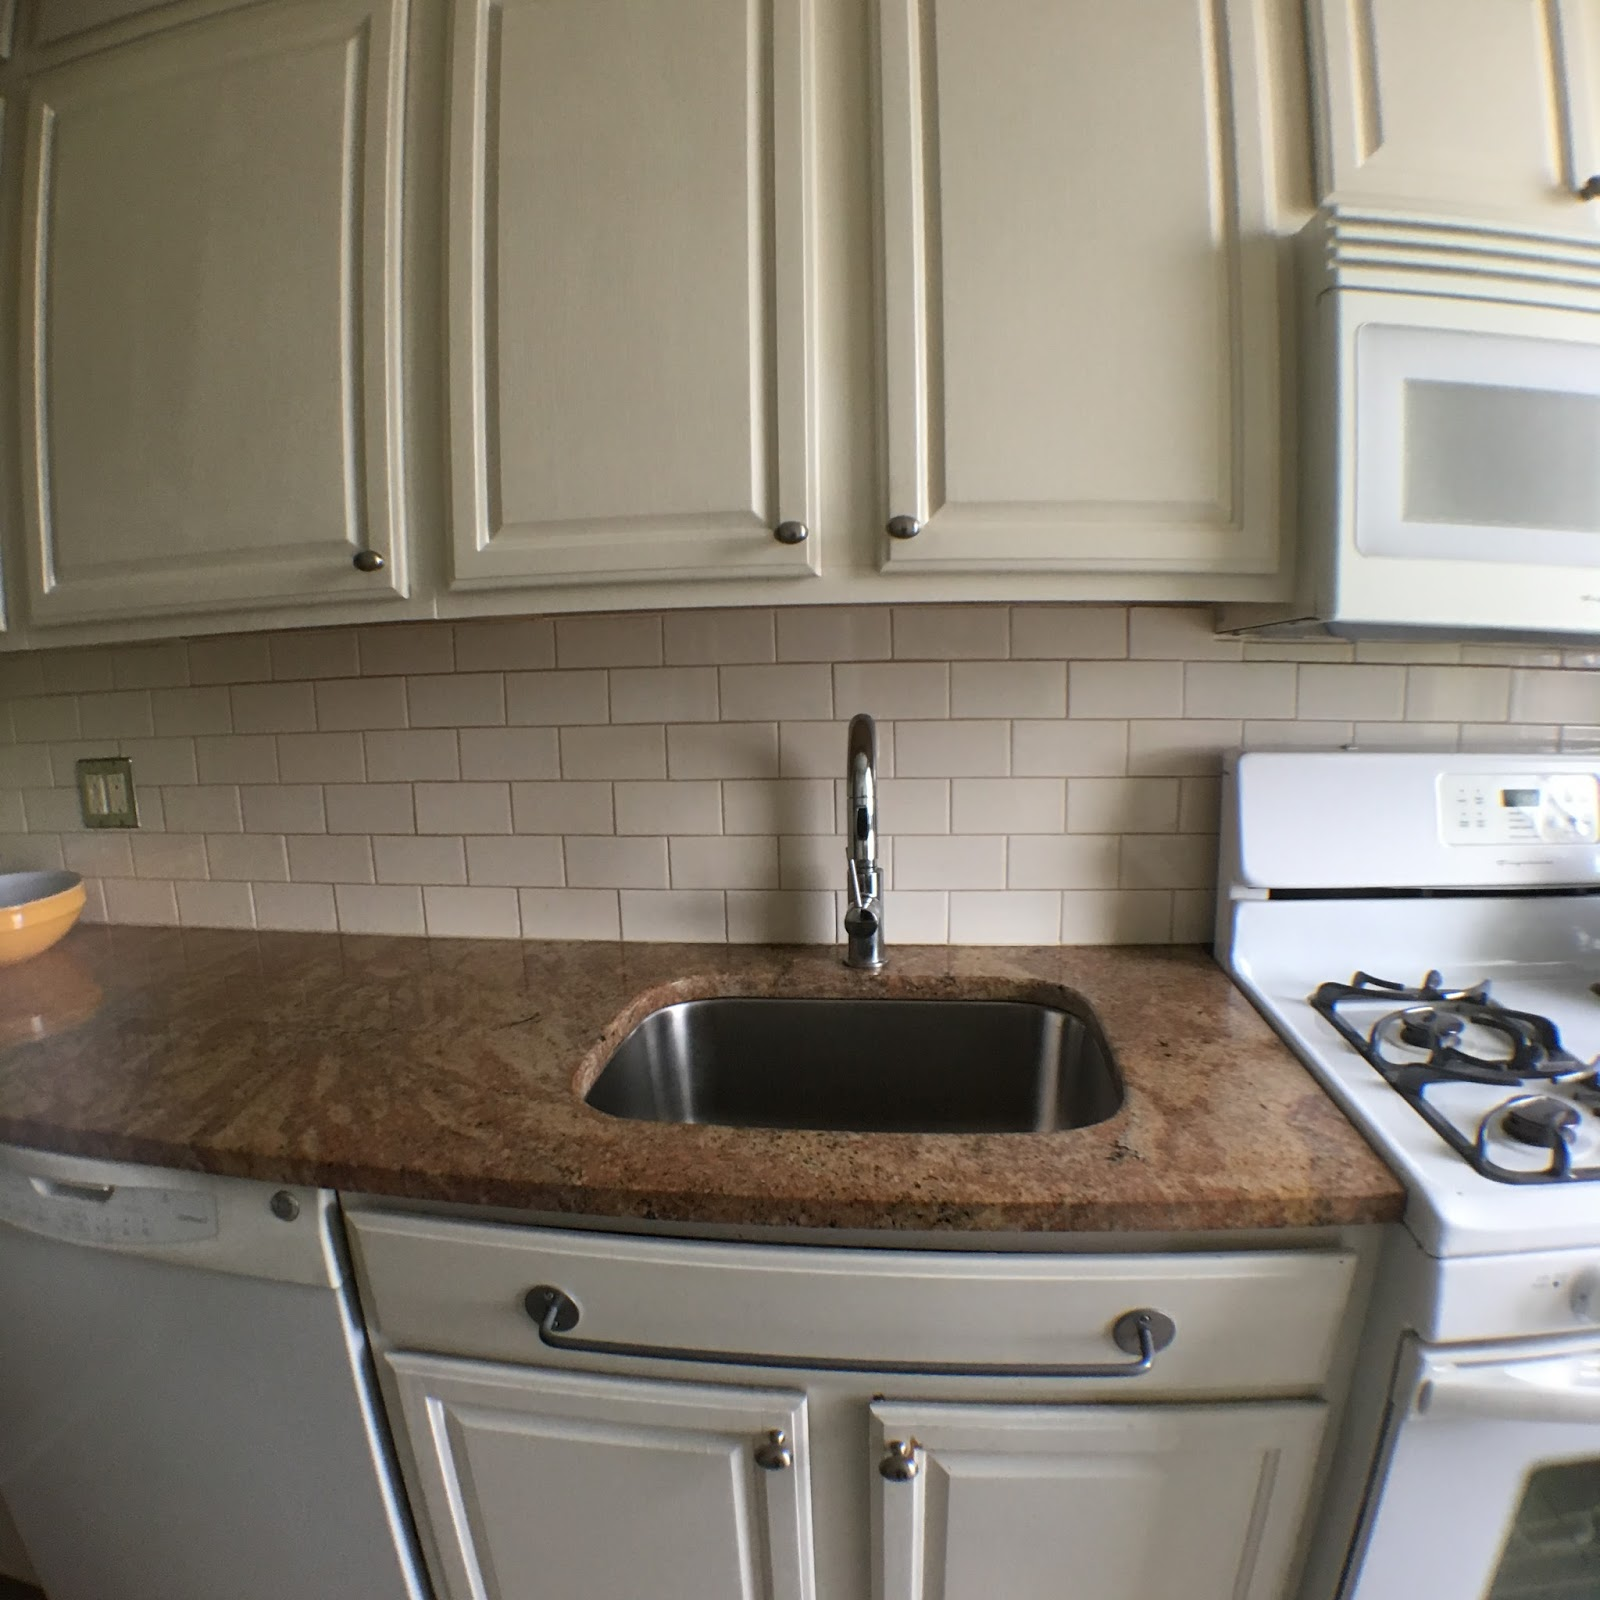 Ome design decor and renovation renov8or h and subway tile backsplash have successfully muted the pinkness of the granite its still not a stone that i would have chosen myself but i can really dailygadgetfo Image collections